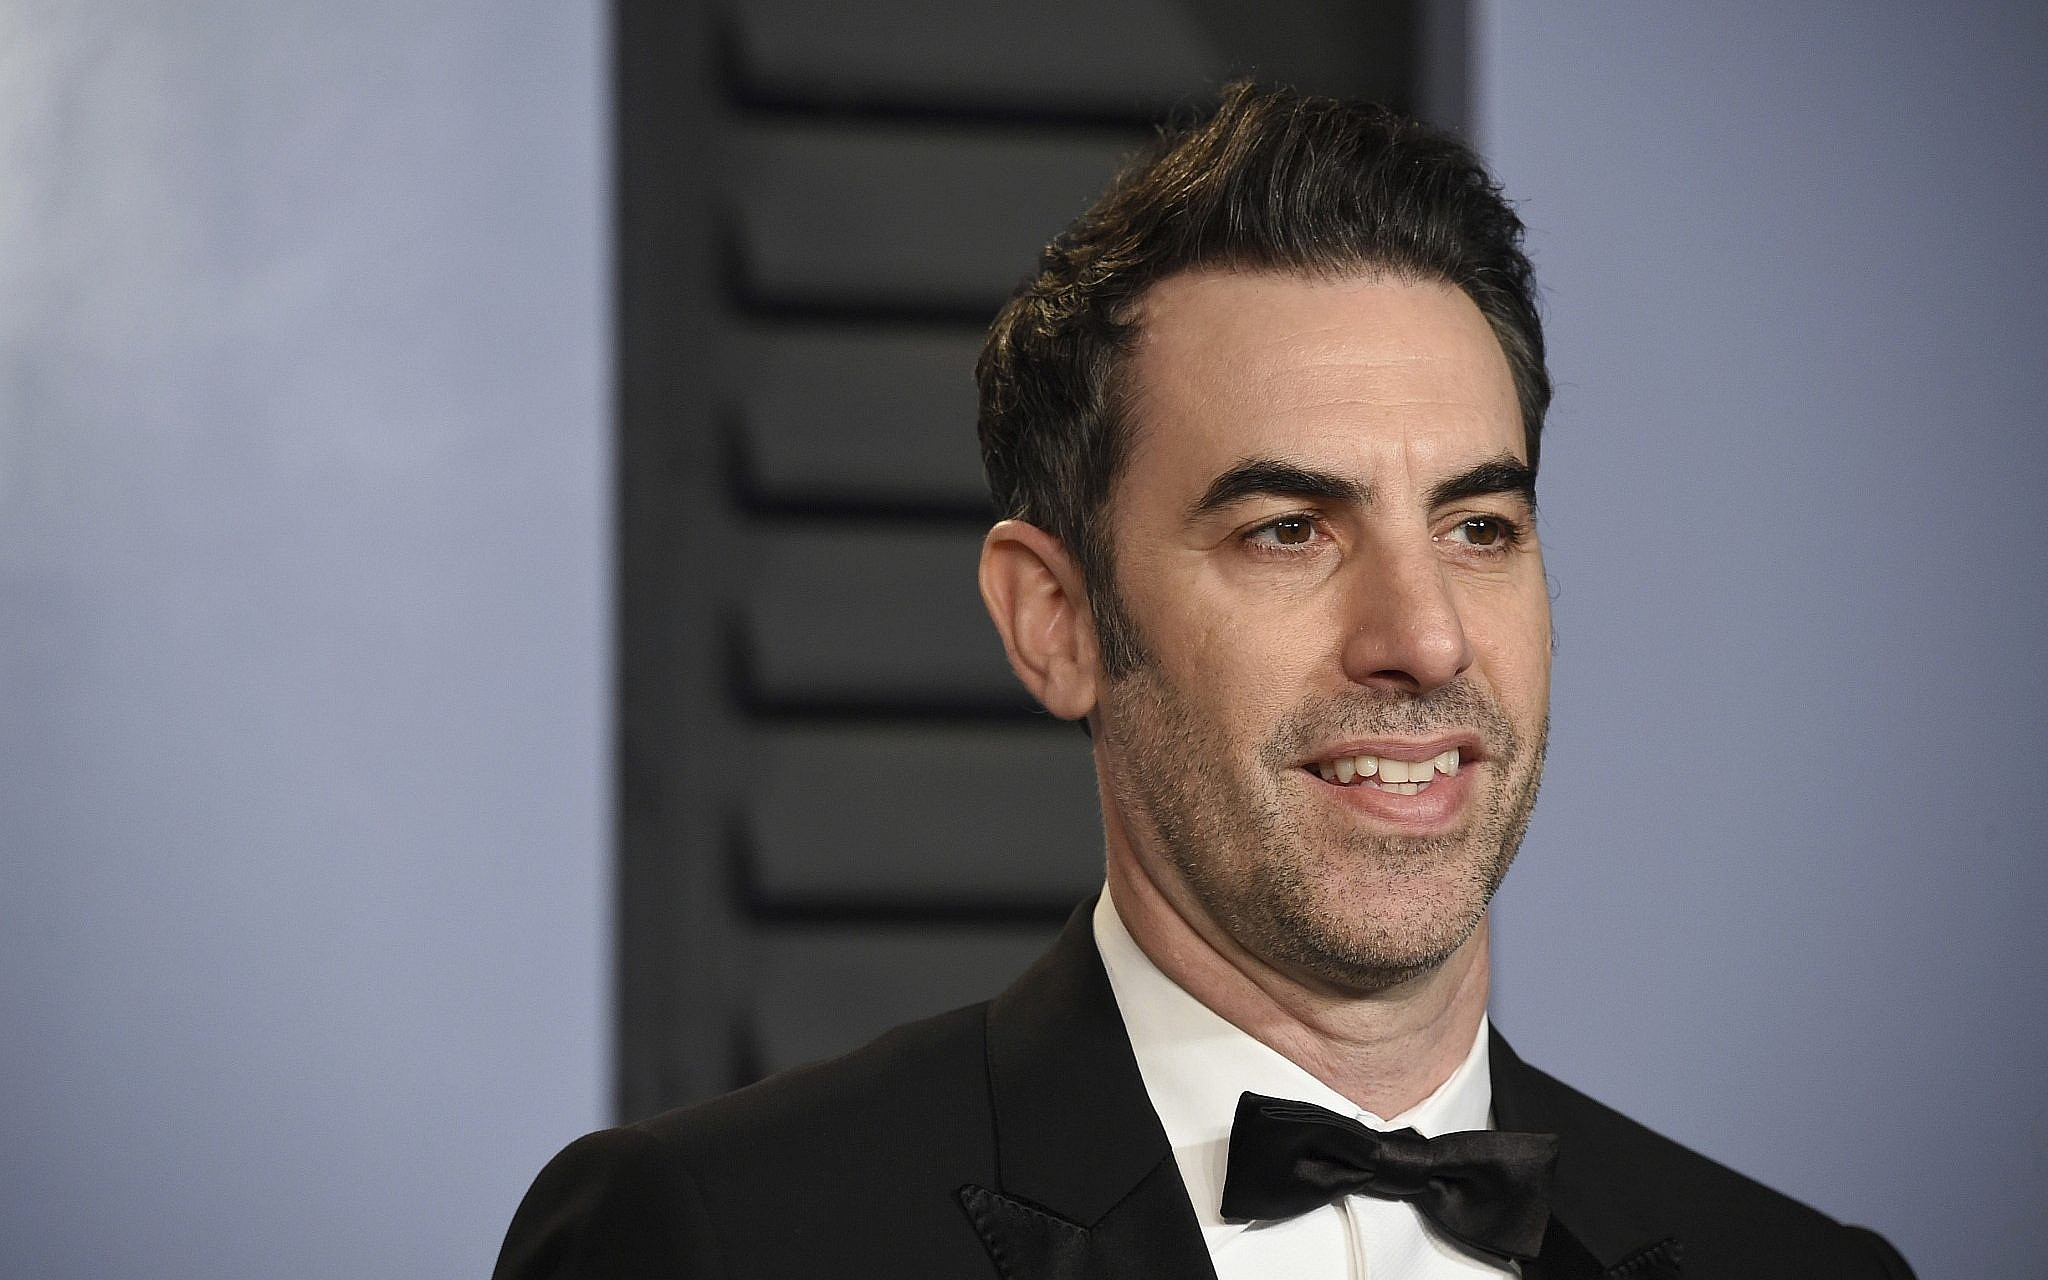 Sacha Baron Cohen returning to TV with 'Who Is America?'